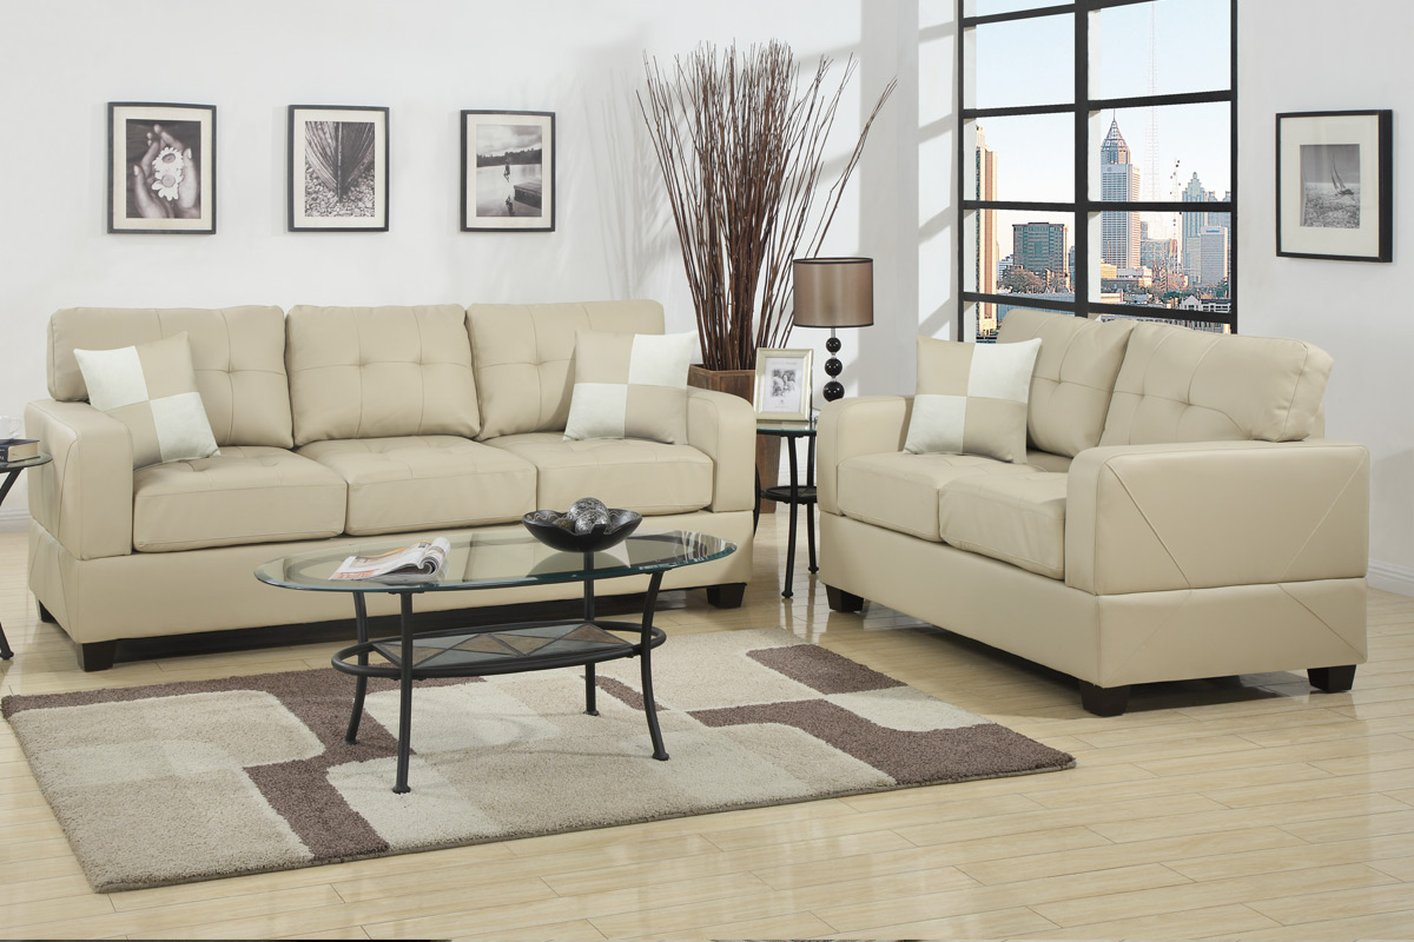 Poundex chase f7342 beige leather sofa and loveseat set for Leather sofa and loveseat set